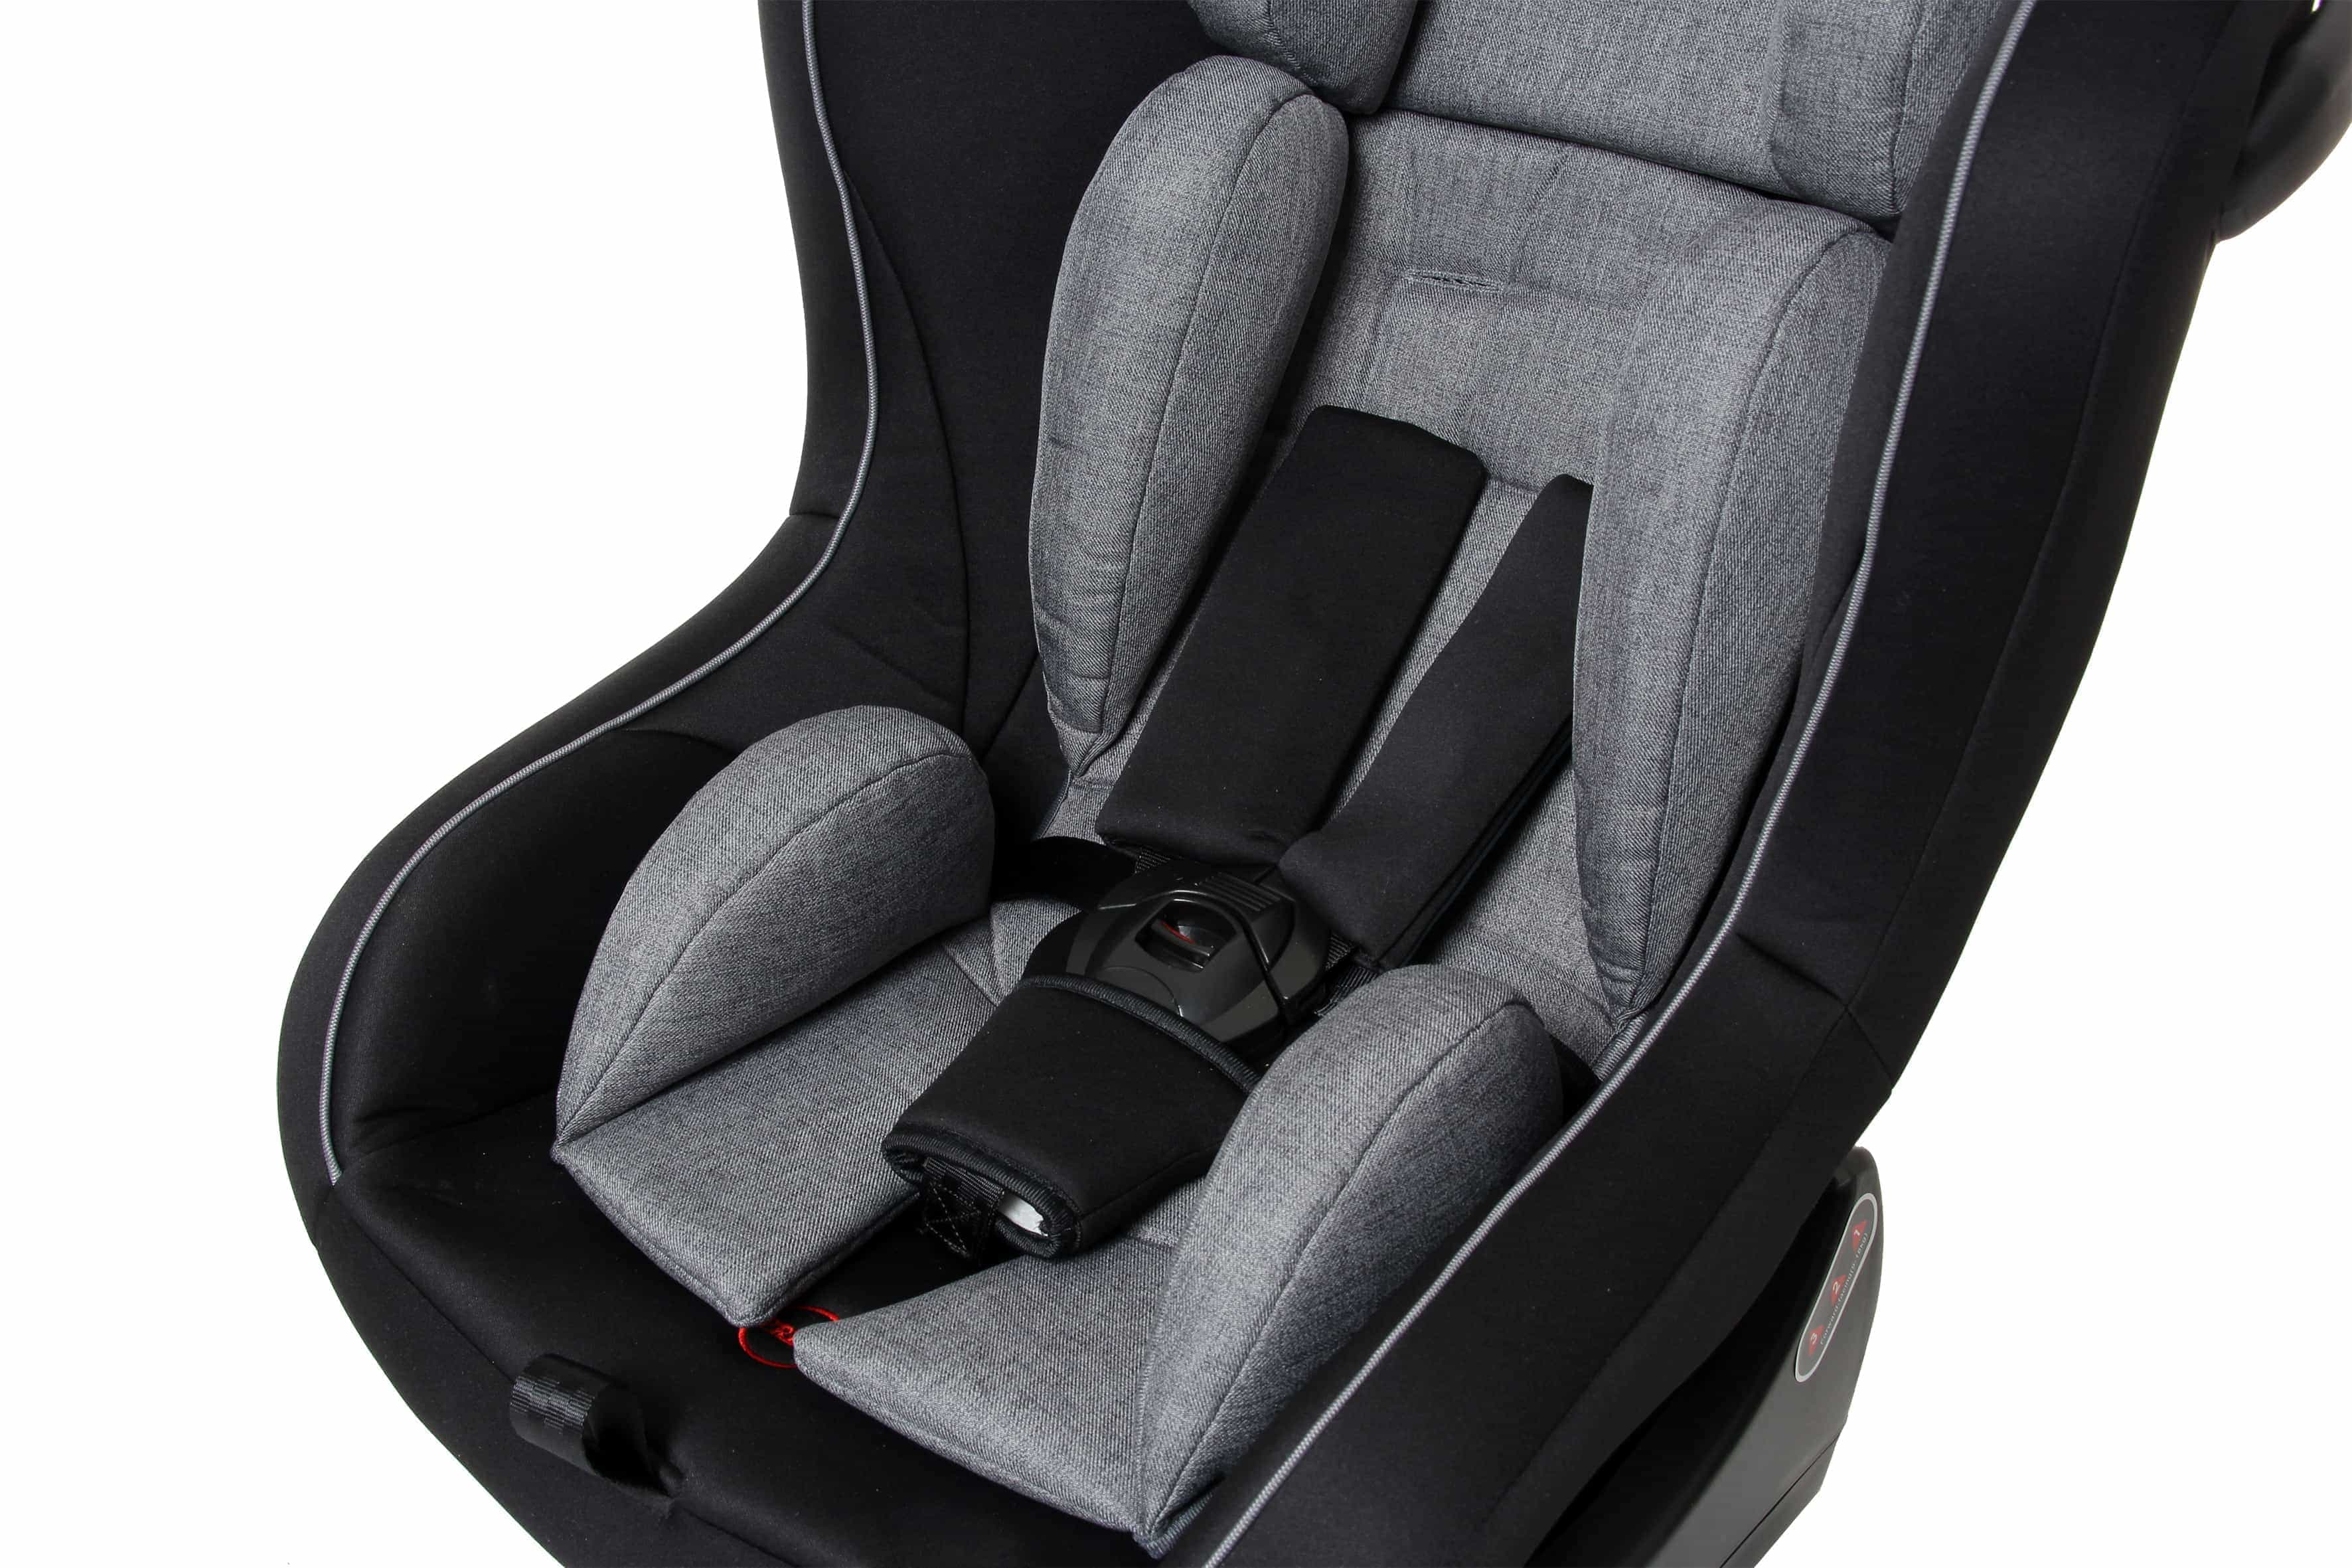 Sillas De Bebe Coche Silla Coche Bebé Safety Baby 43 1 Osann Cooldreams